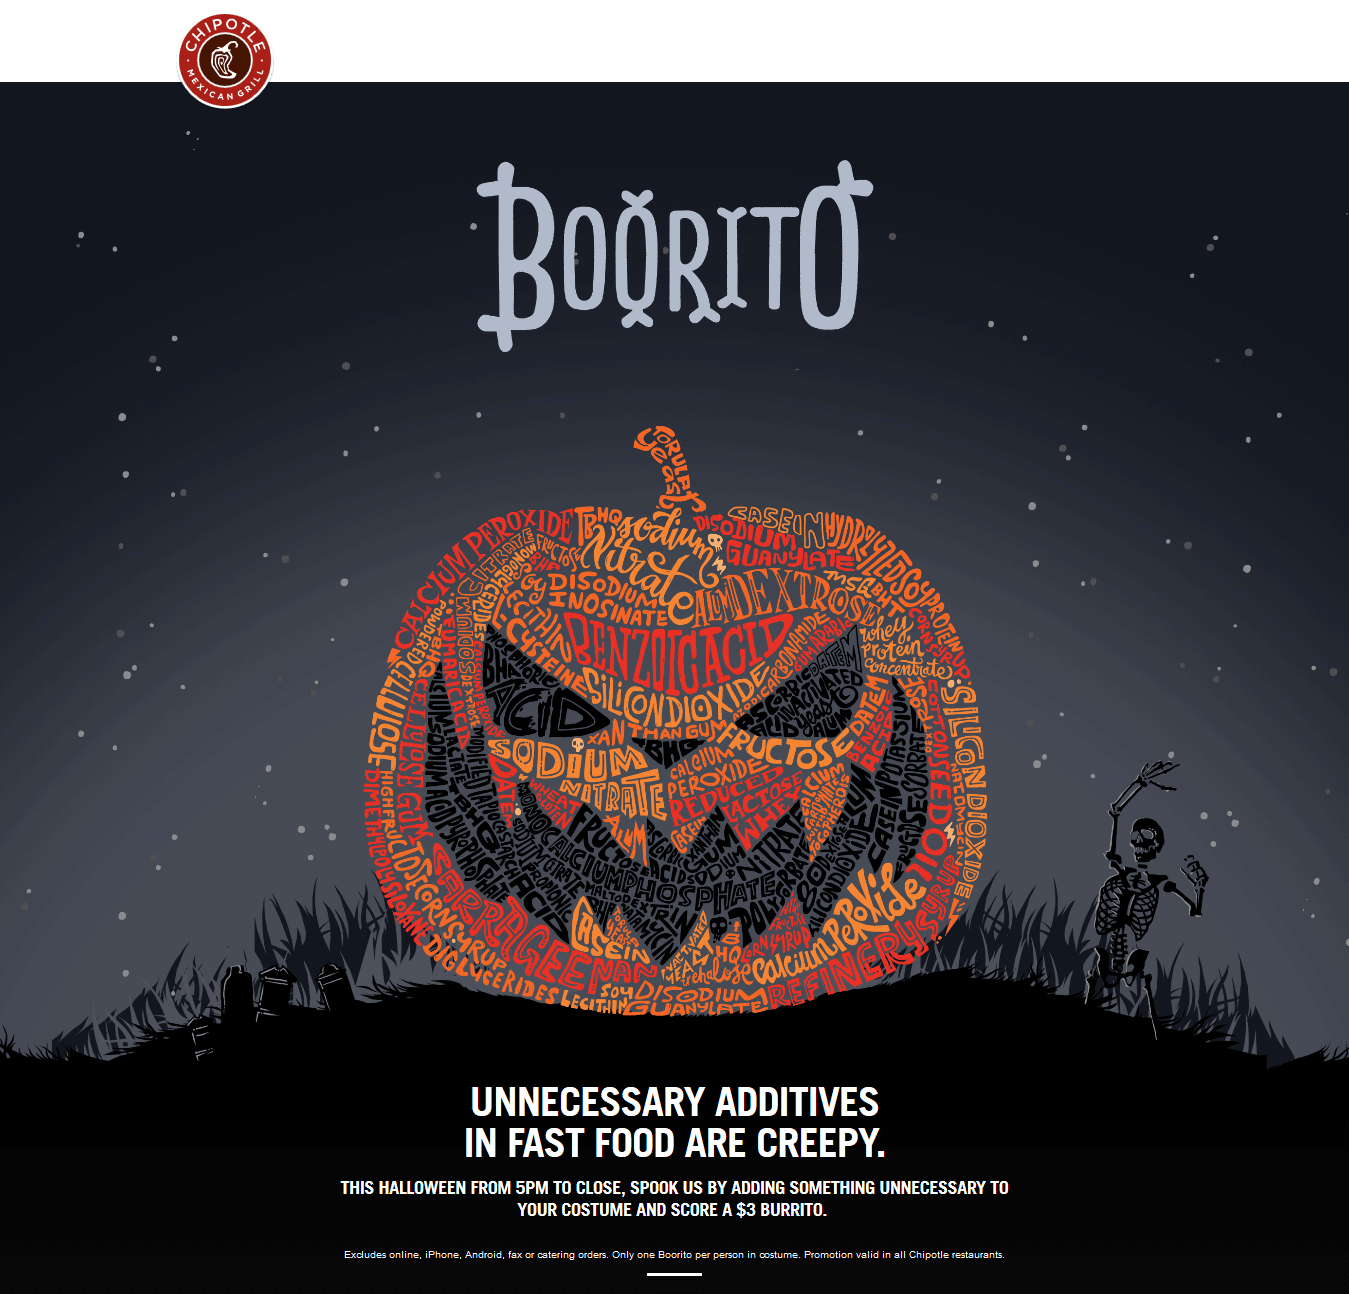 Chipotle Coupon September 2017 $3 burritos in costume Halloween at Chipotle